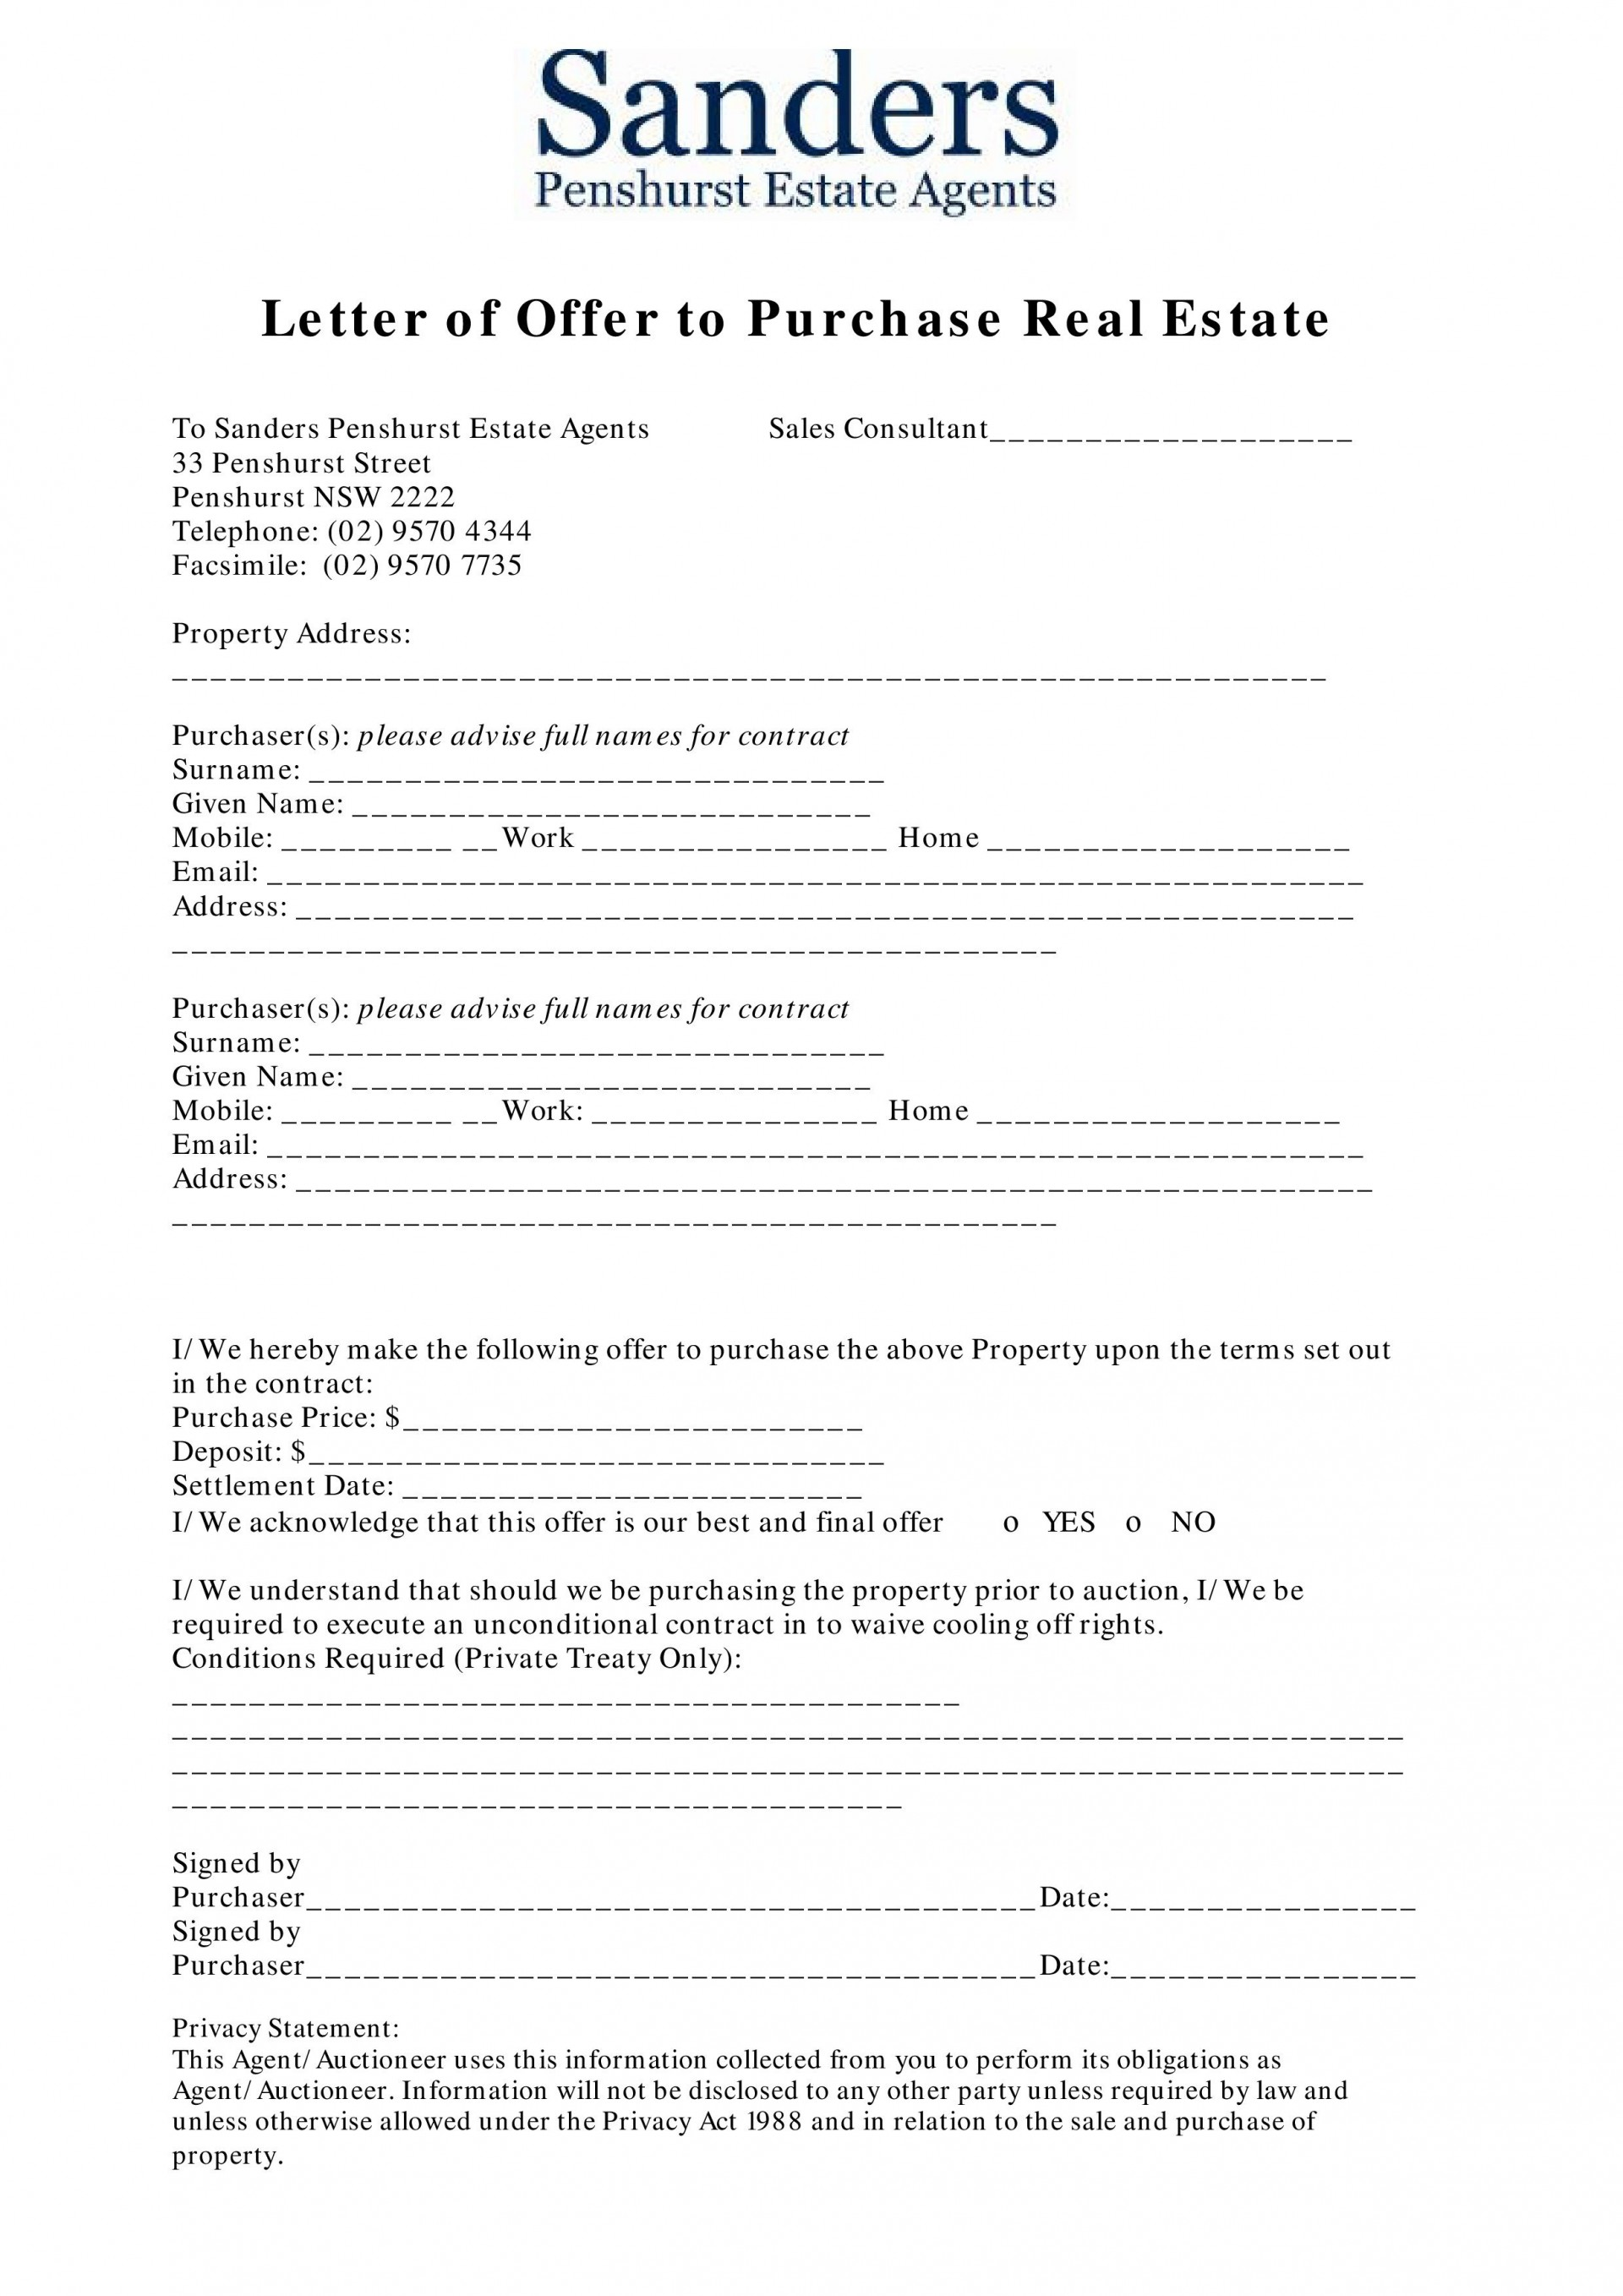 007 Stupendou Home Offer Letter Template High Definition  Purchase1920